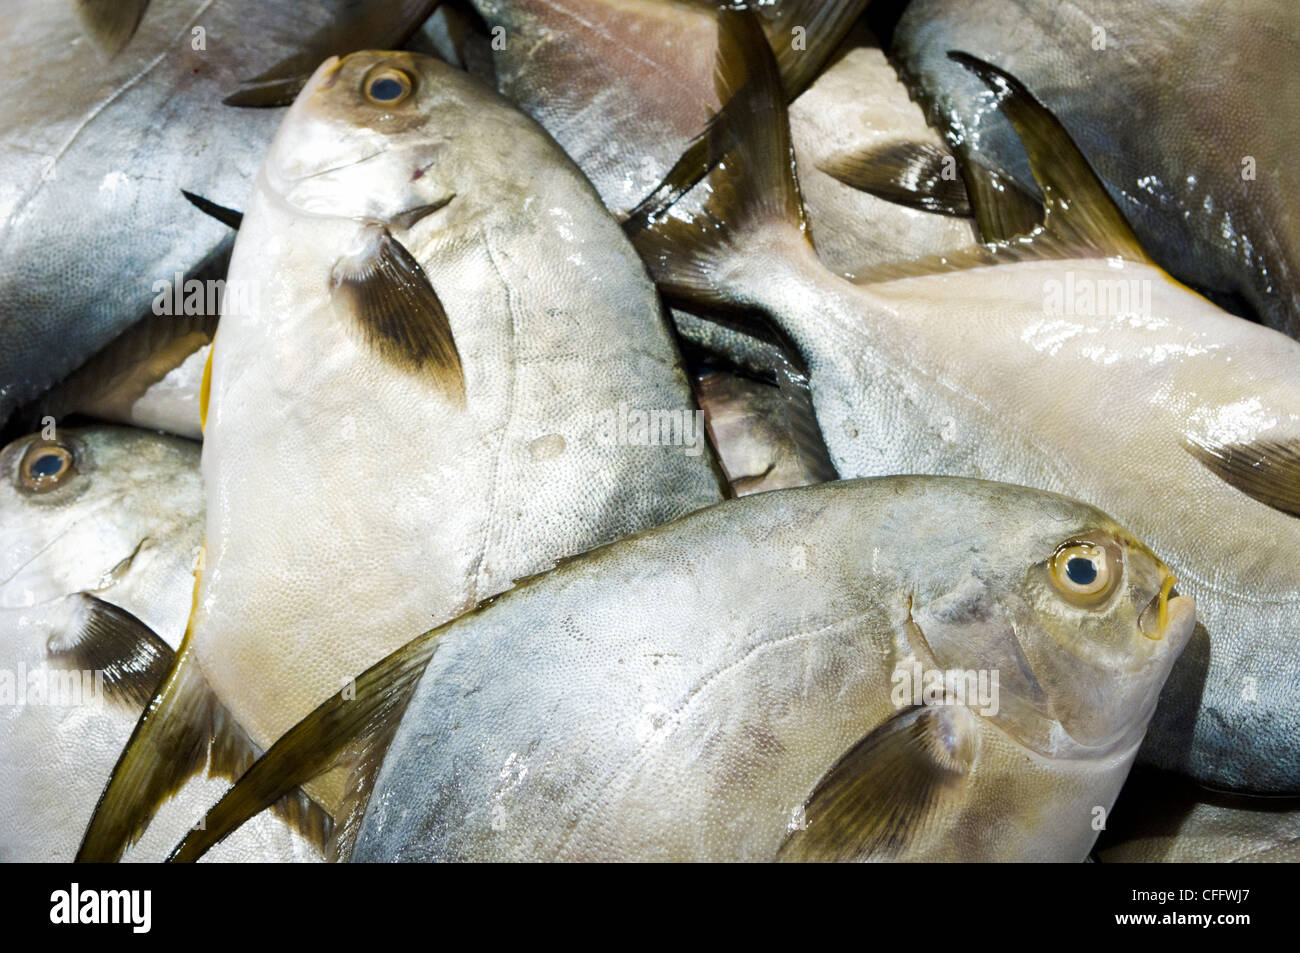 Pomfret fish for sale, in wet market of philippines. - Stock Image